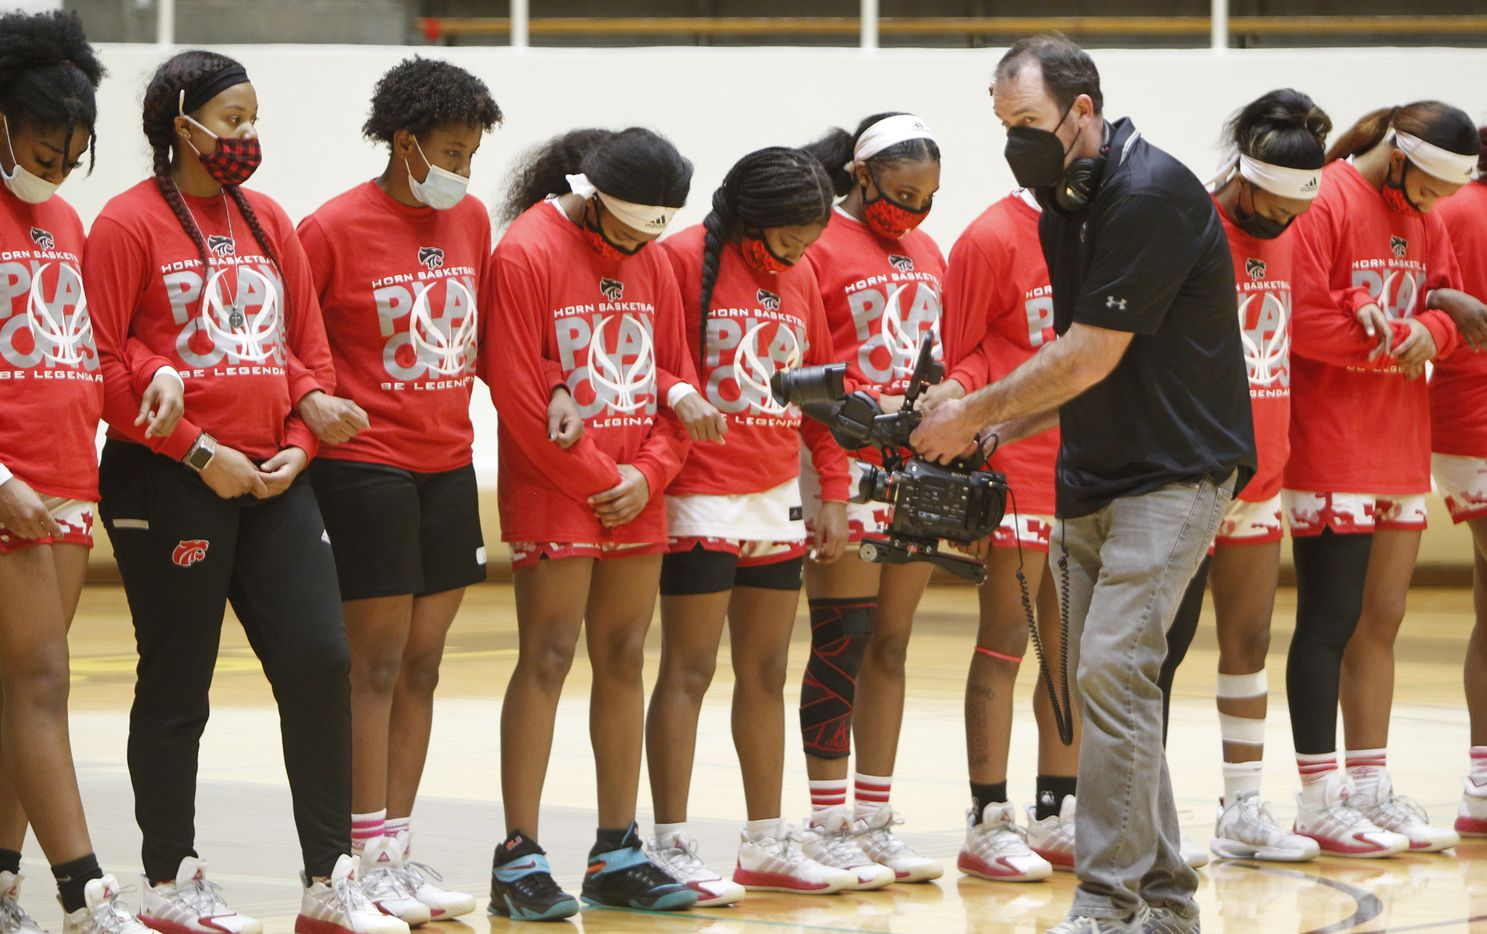 Members of the Mesquite Horn varsity girls basketball team pause for the playing of the national anthem prior to the start of their game against Duncanville. The two teams played their Class 6A area-round playoff basketball game at Loos Field House in Addison on February 23, 2021. (Steve Hamm/ Special Contributor)